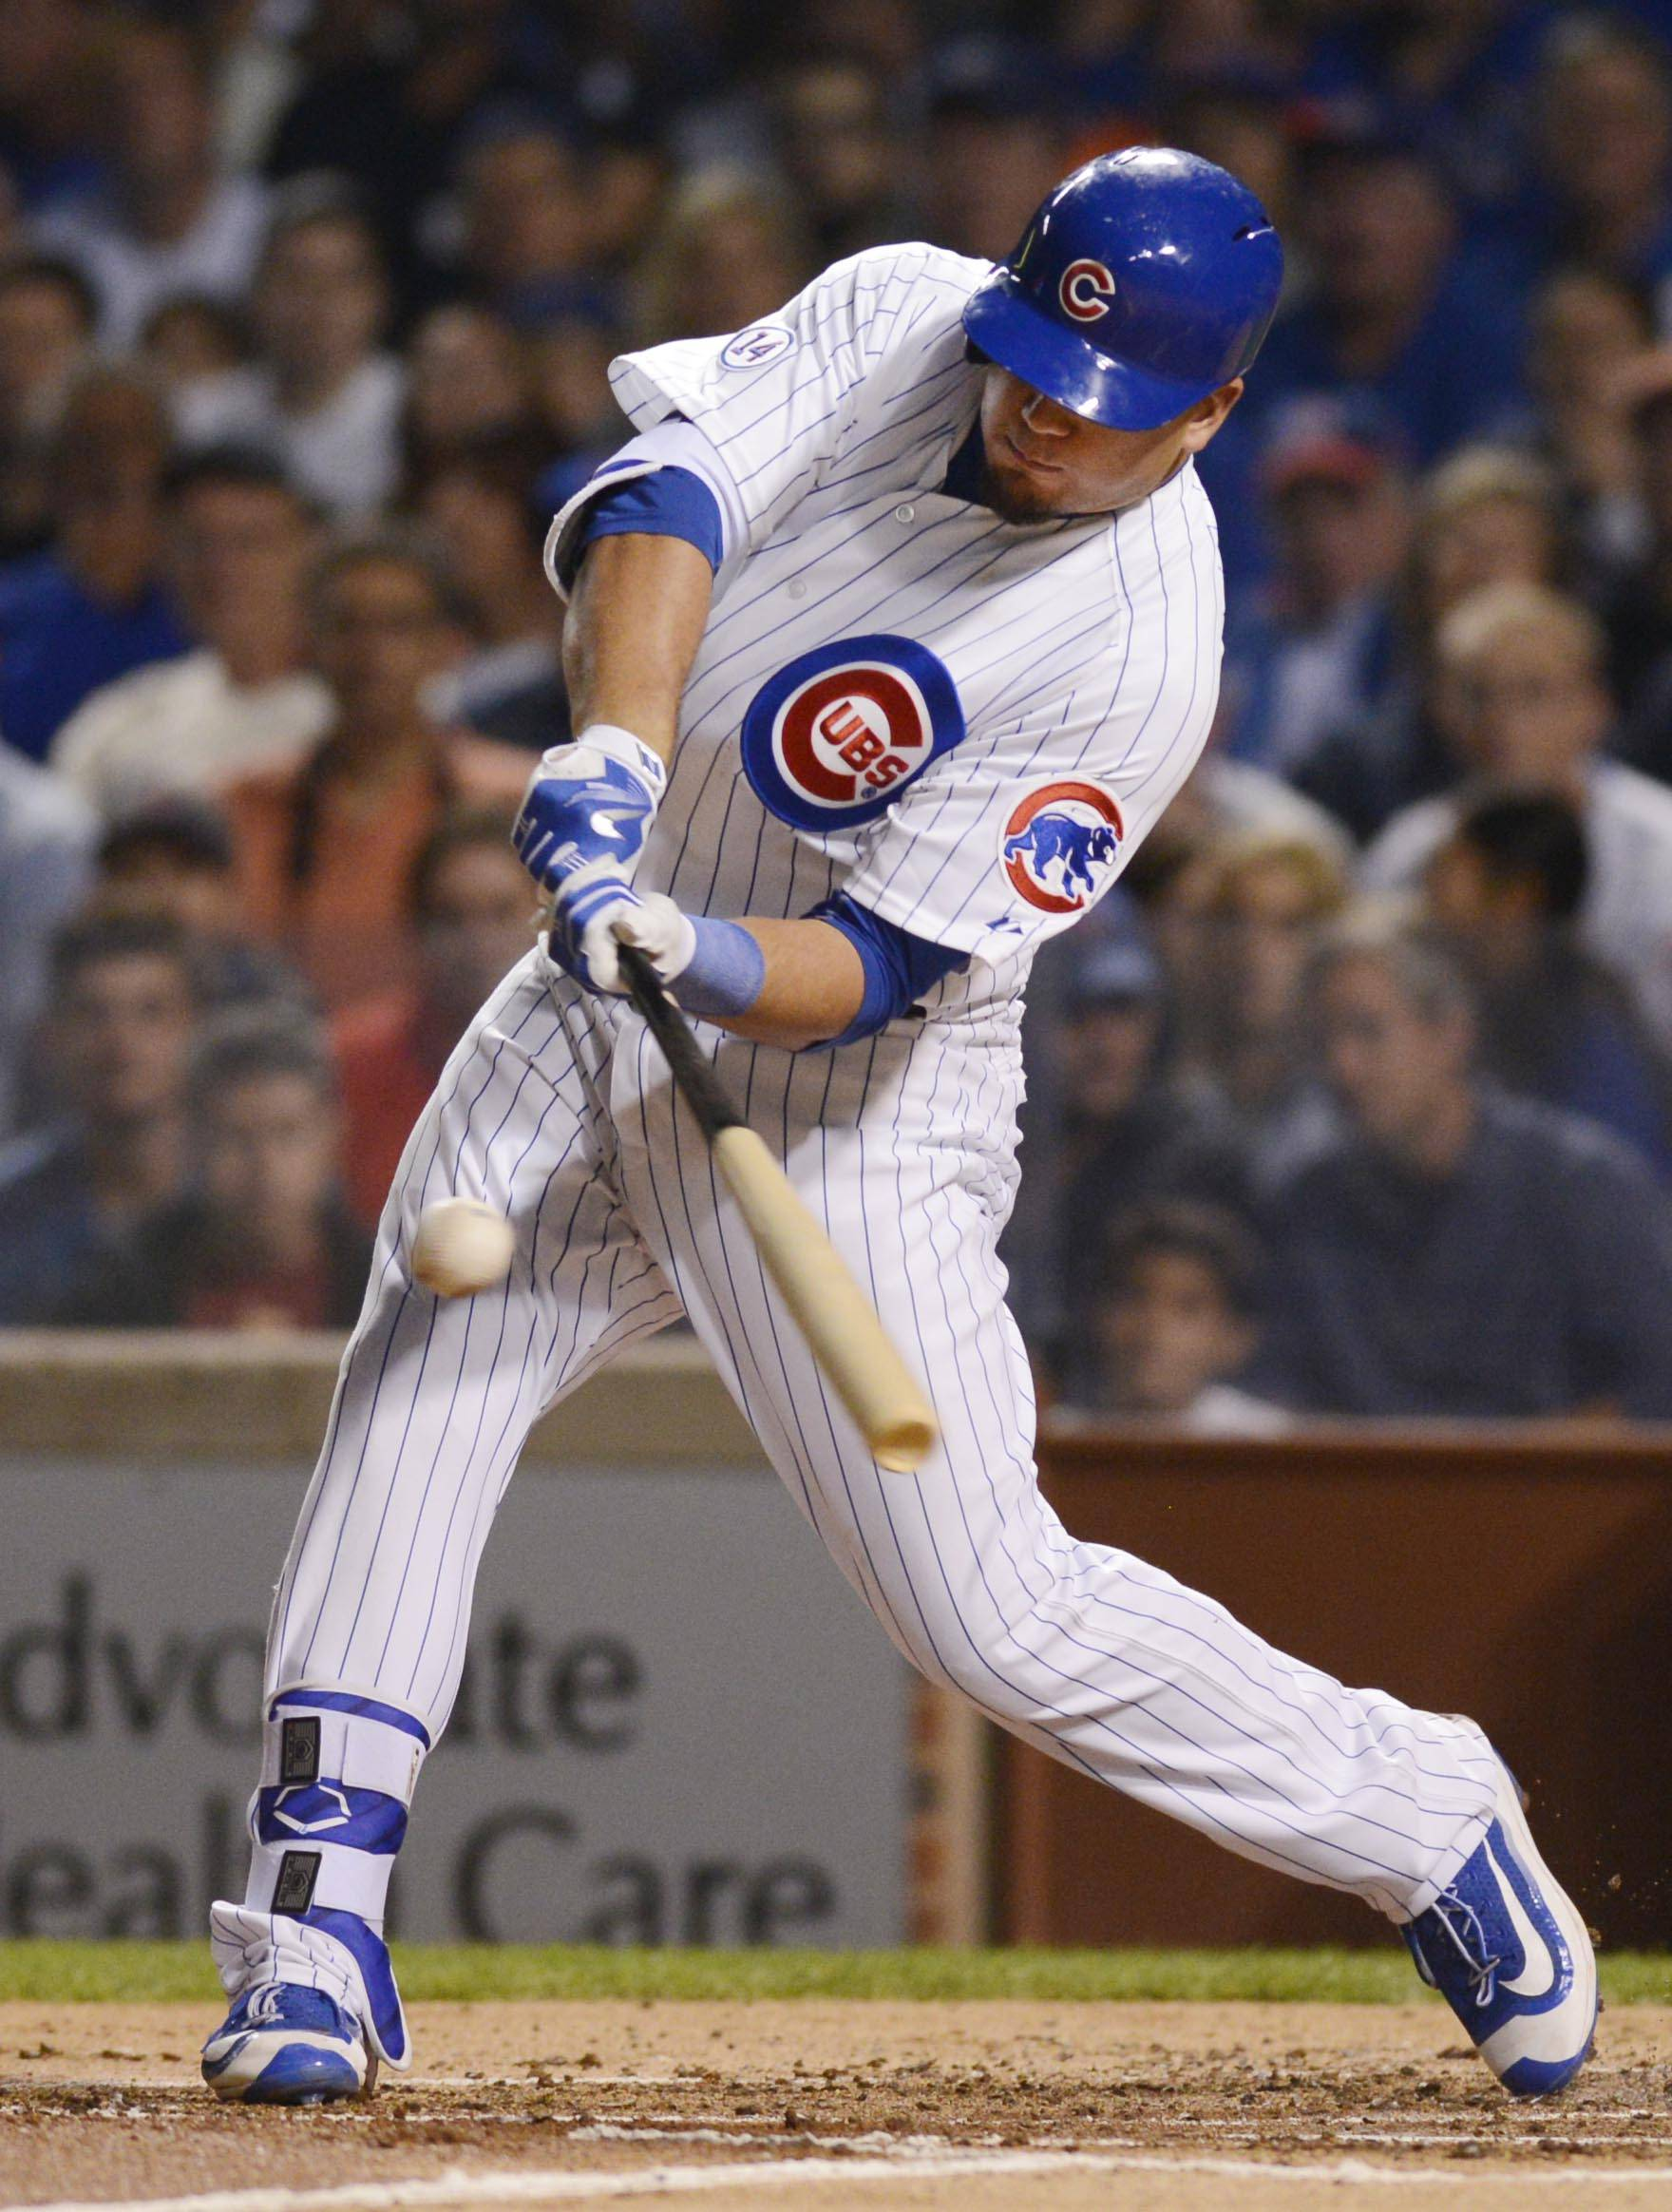 While Kyle Schwarber has hit 12 home runs this season, he is hitting just .171 with 75 strikeouts in 222 at-bats. The Cubs are sending him to their Class AAA team in Des Moines, Iowa.